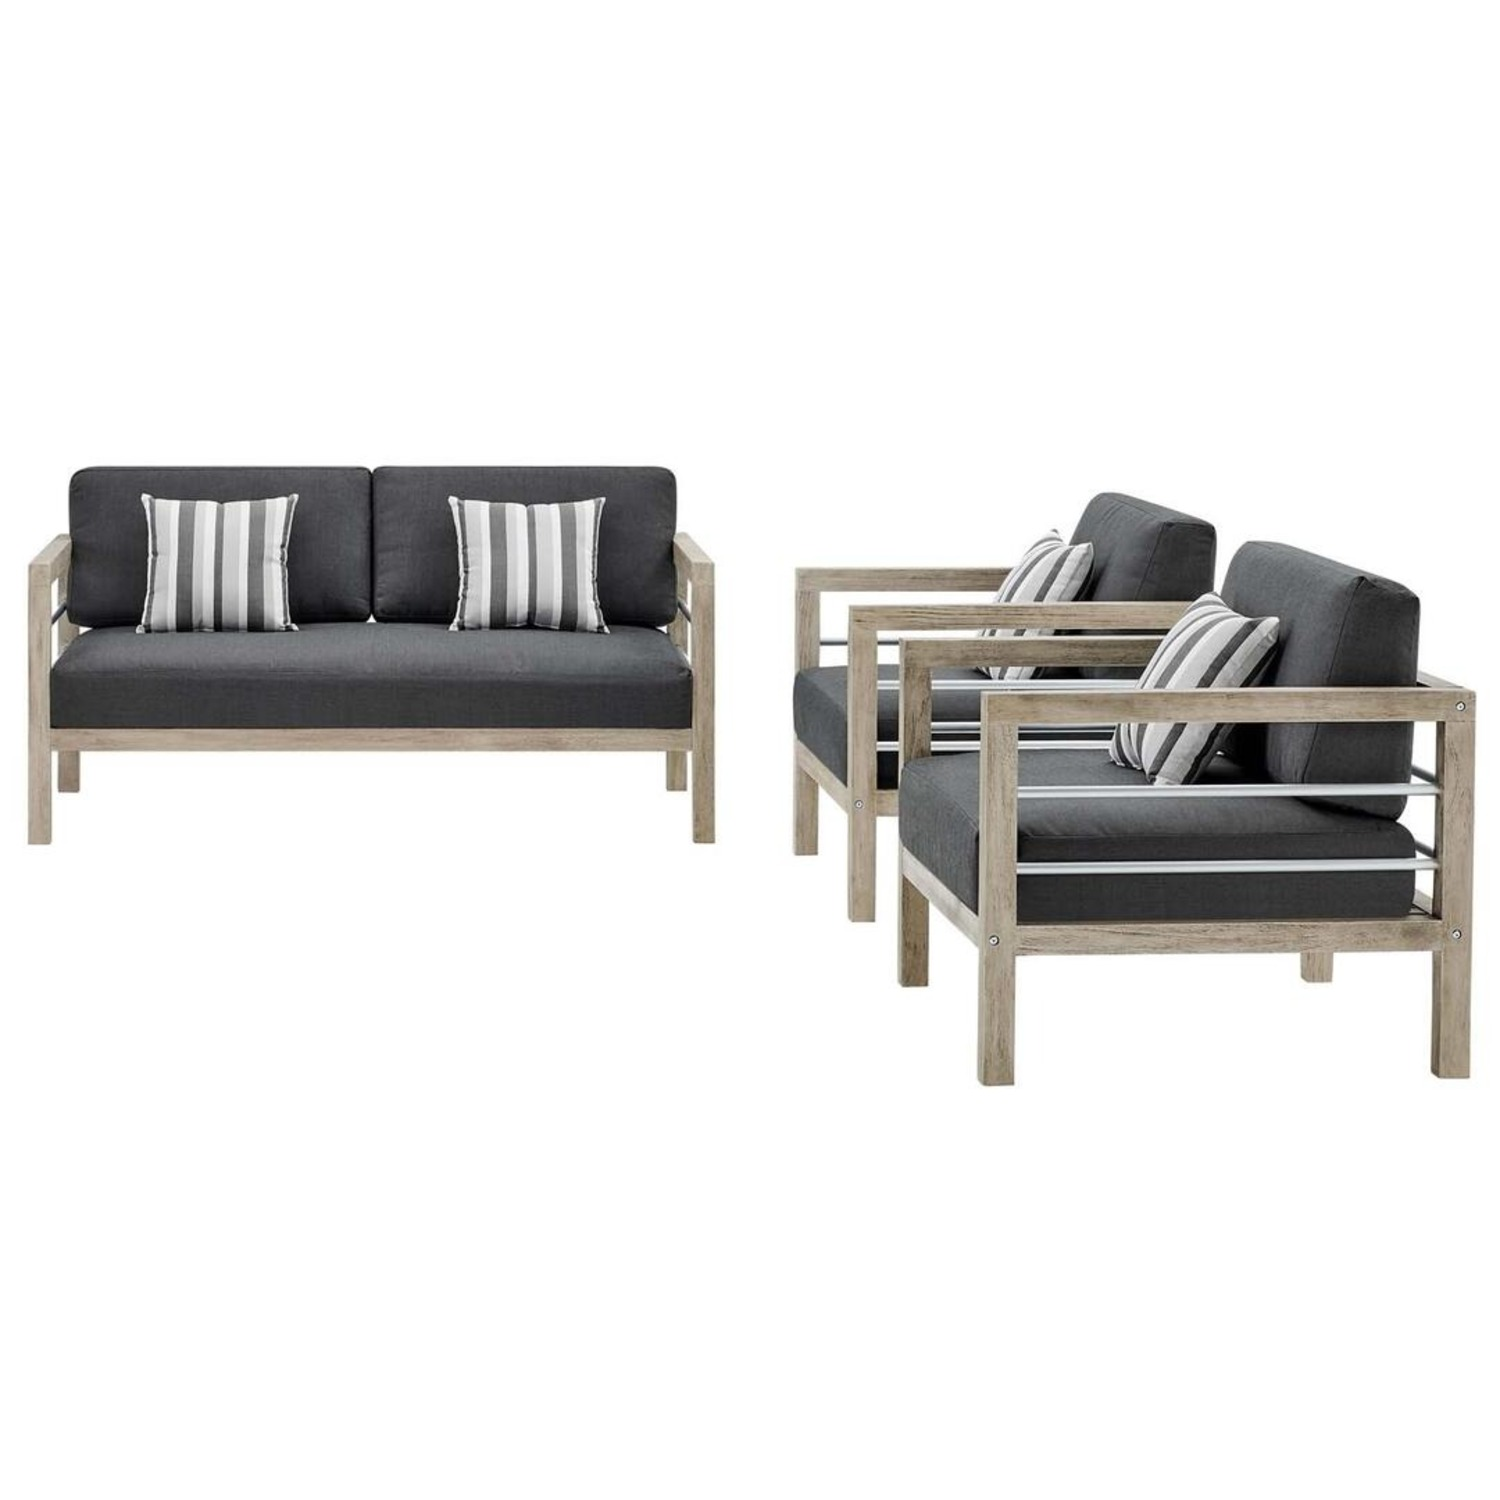 3-Piece Outdoor Patio Set In Light Gray Finish - image-0